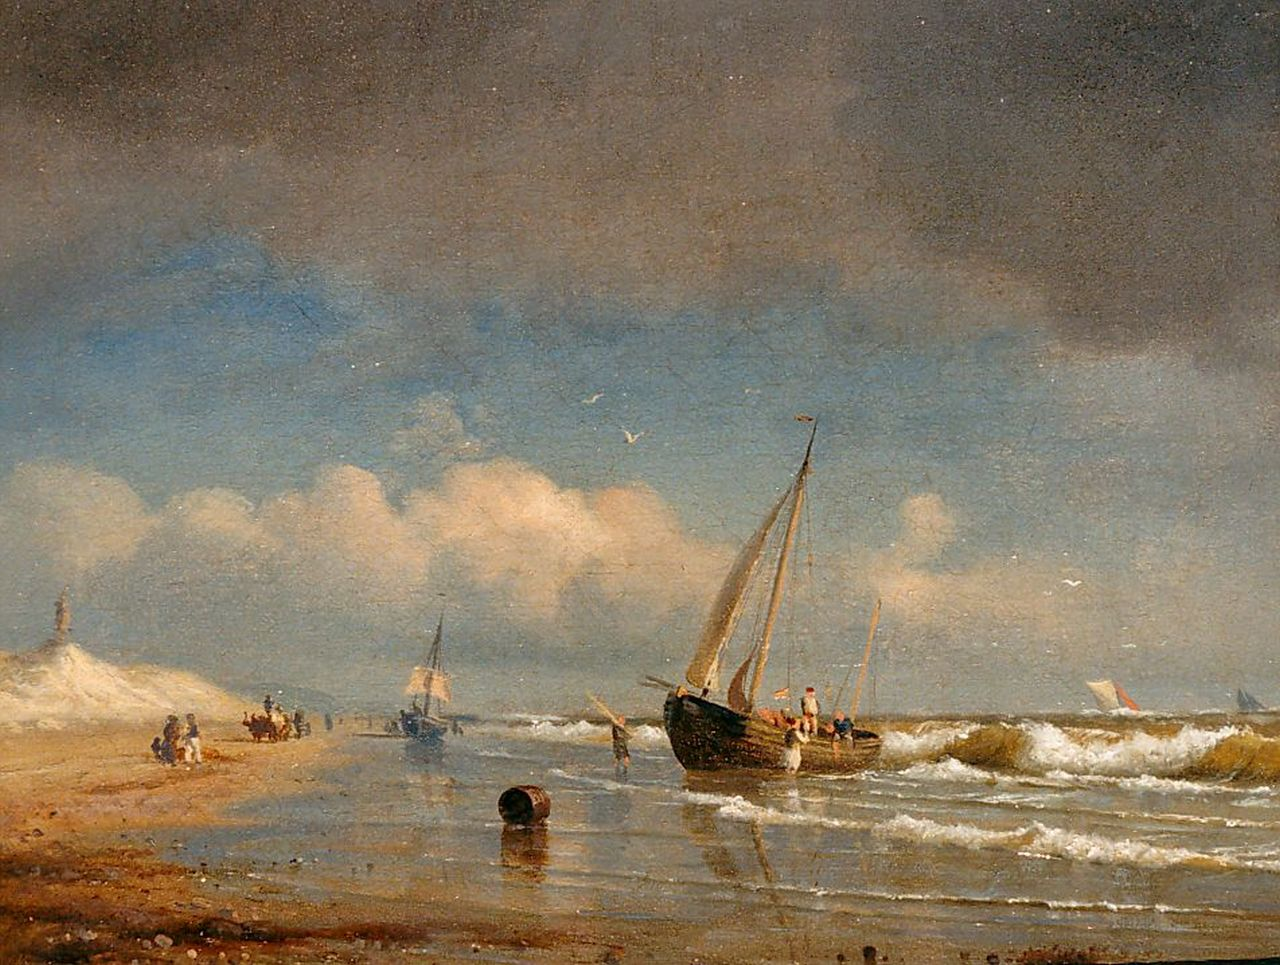 Carl-Robert Kummer | Vessels along the coast, oil on canvas, 19.2 x 23.9 cm, signed l.l. and dated 1854